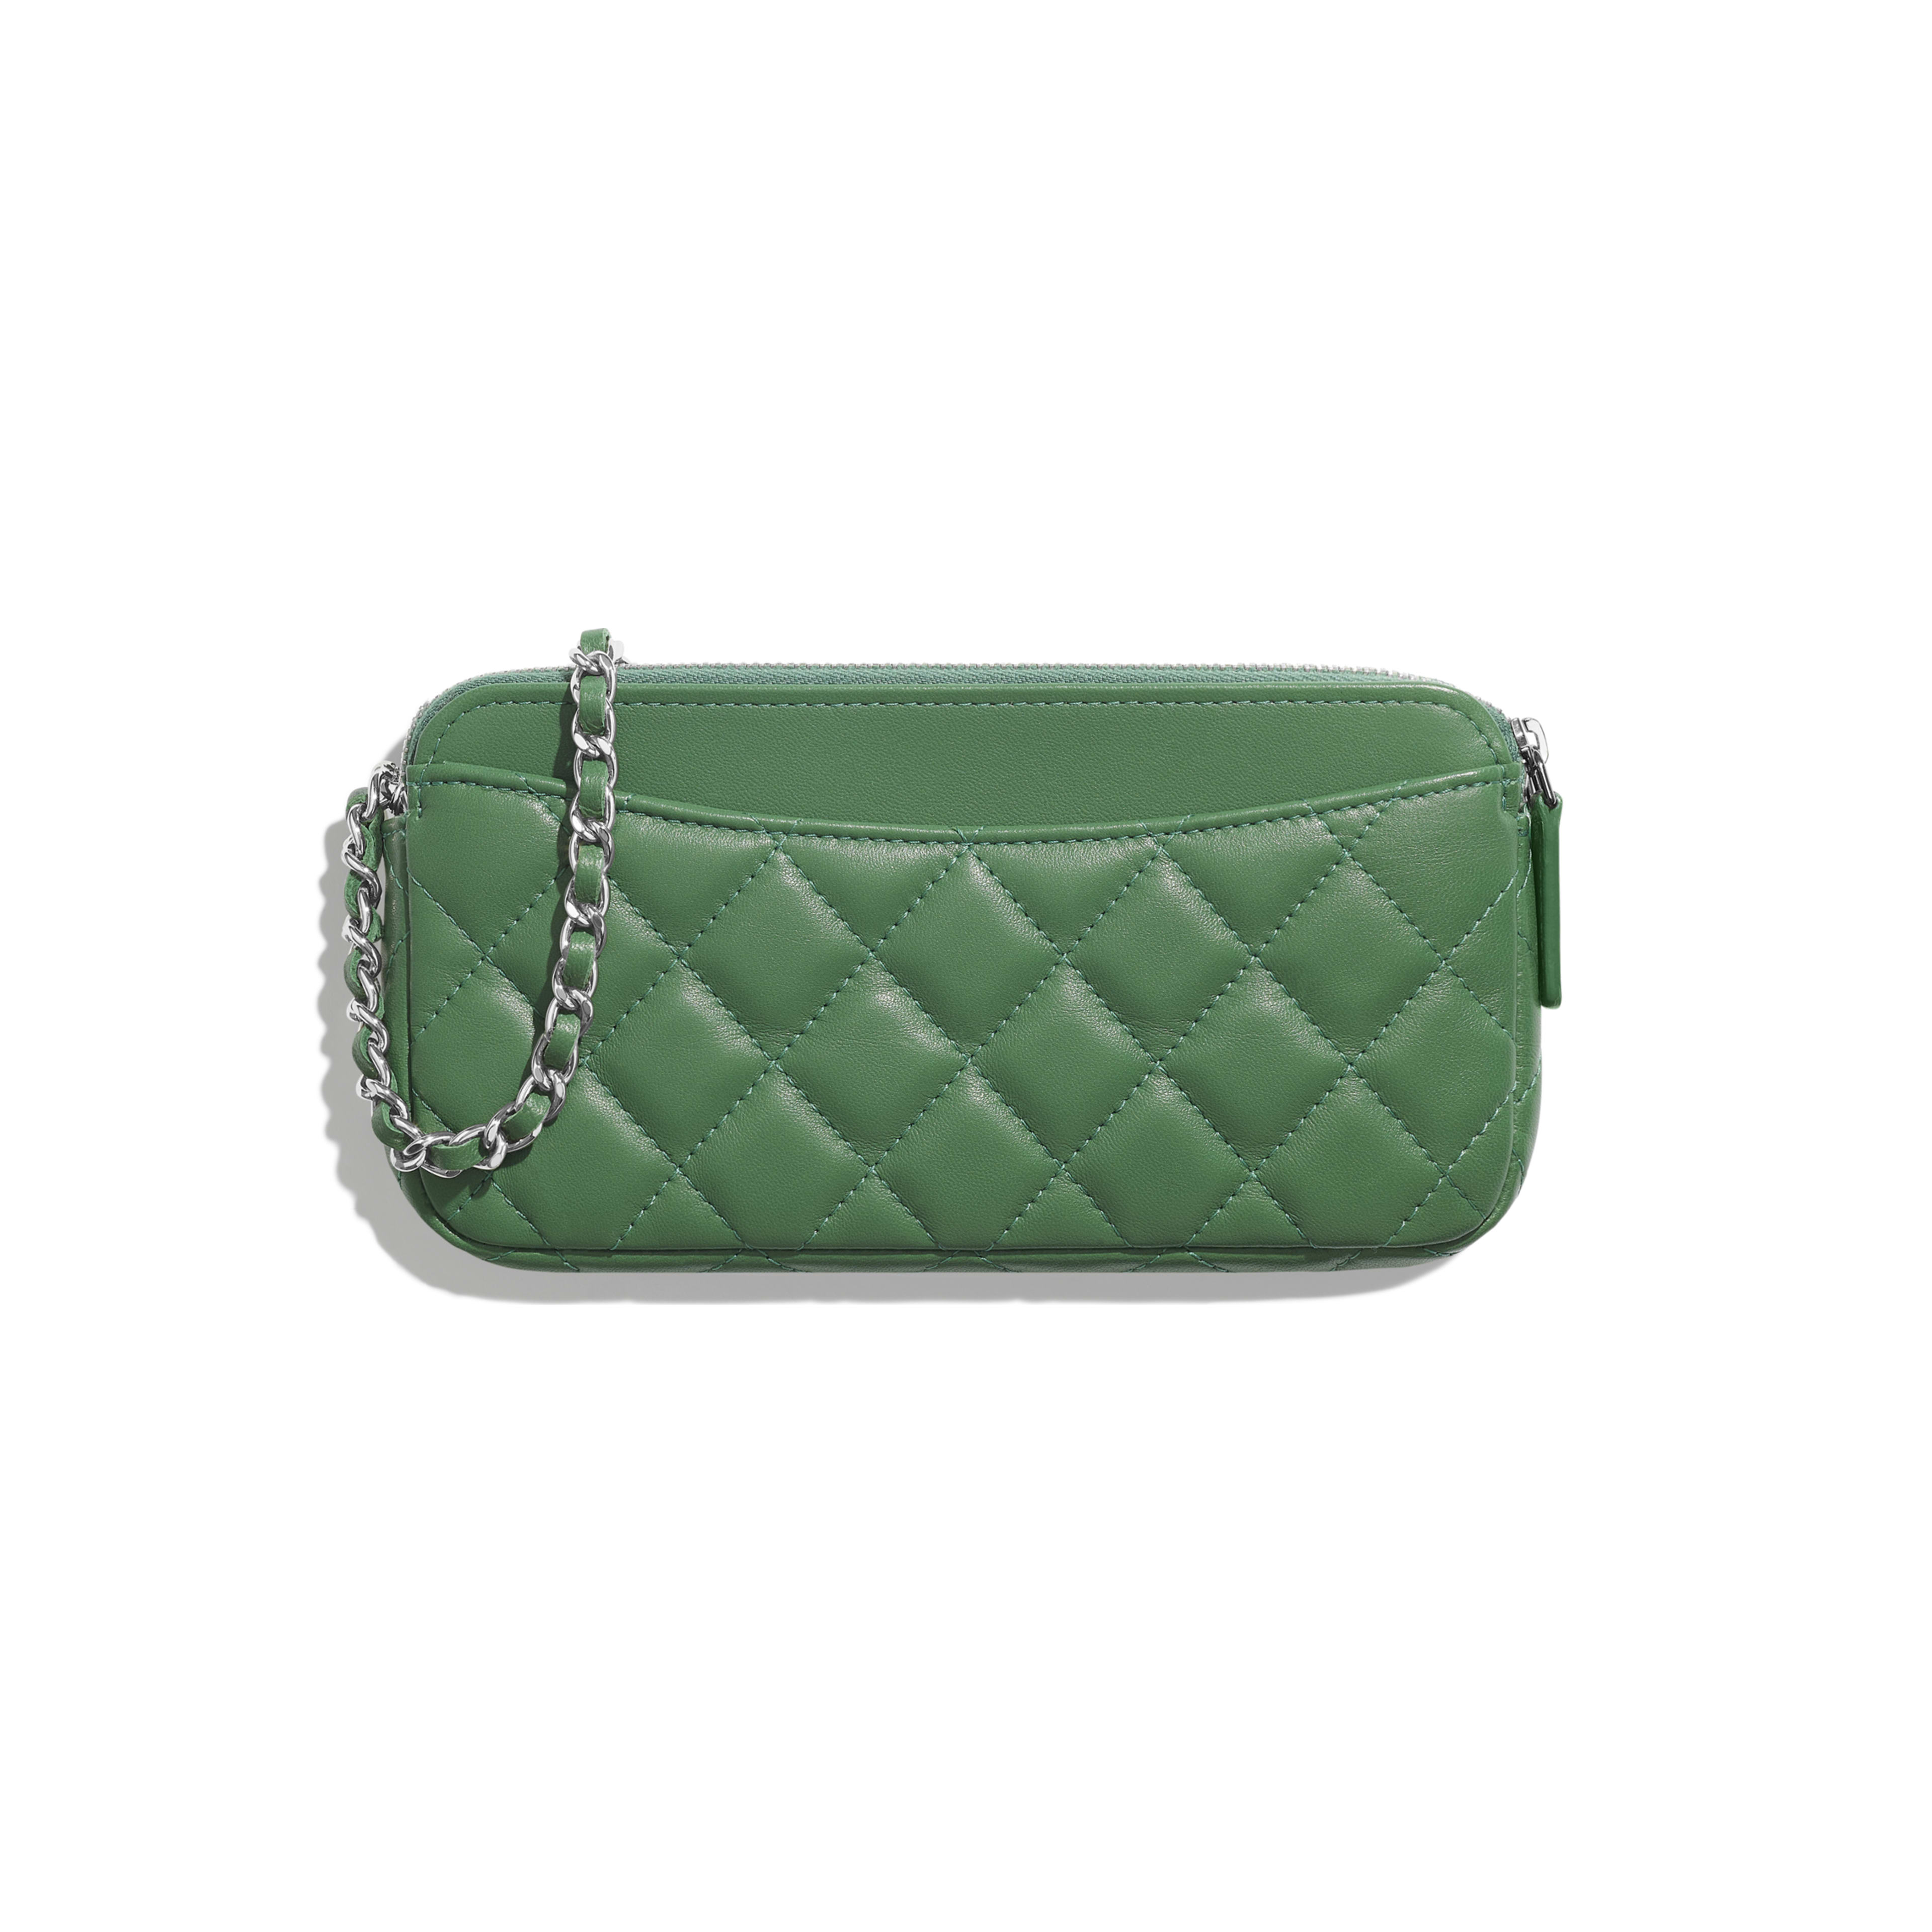 Classic Clutch With Chain - Green - Lambskin - Alternative view - see full sized version